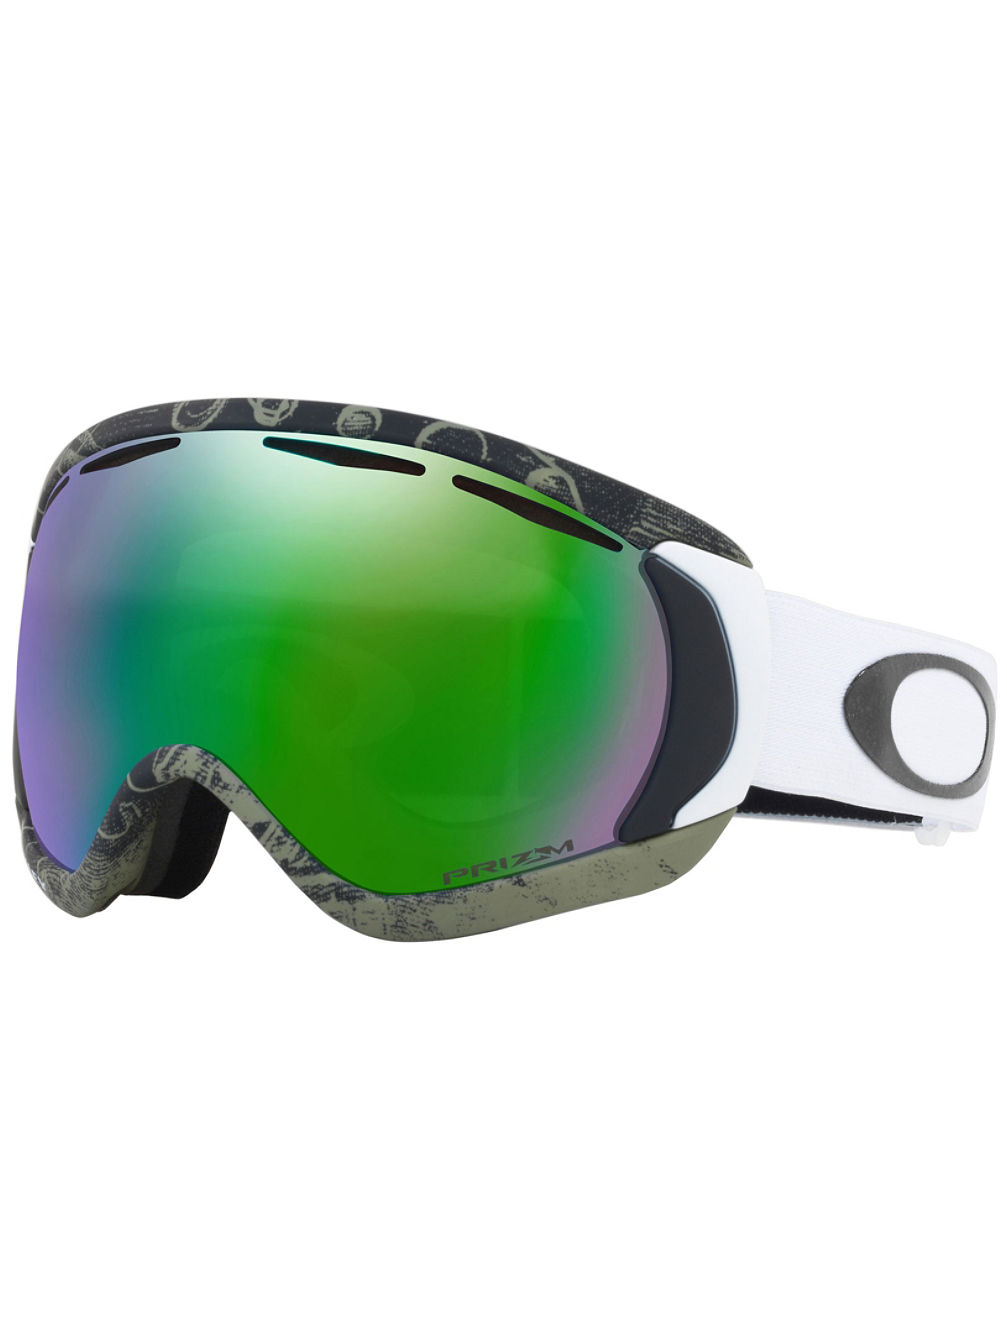 Canopy Tanner Hall Signature Turntable Green Goggle